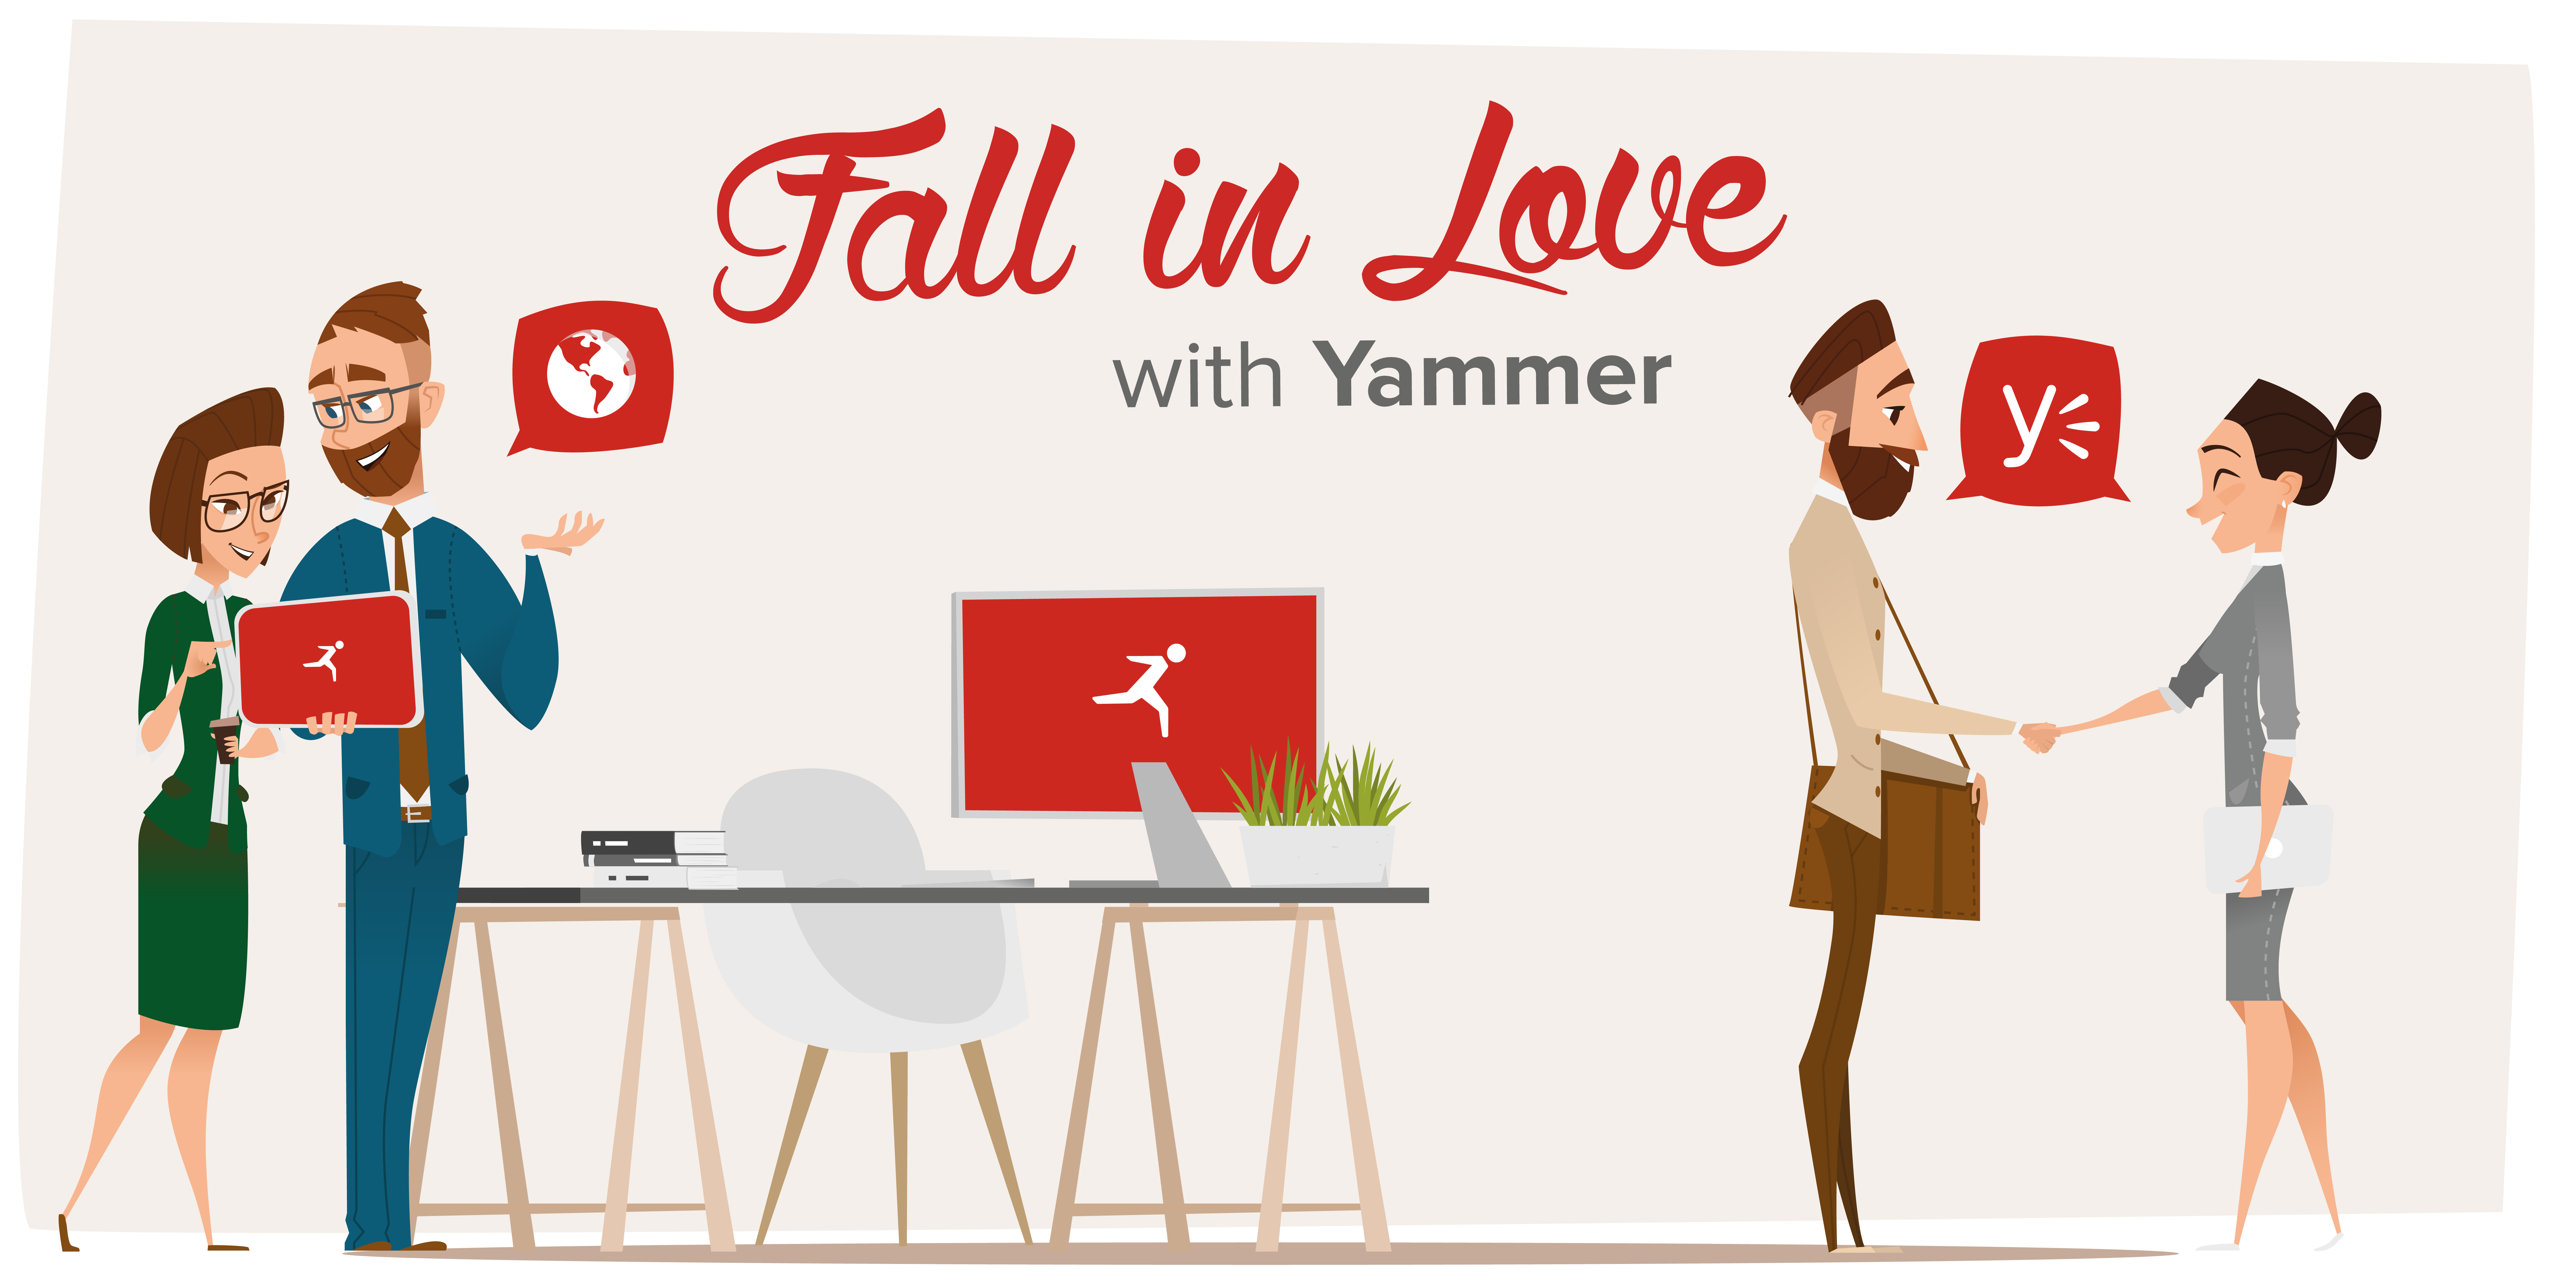 fall in love with yammer